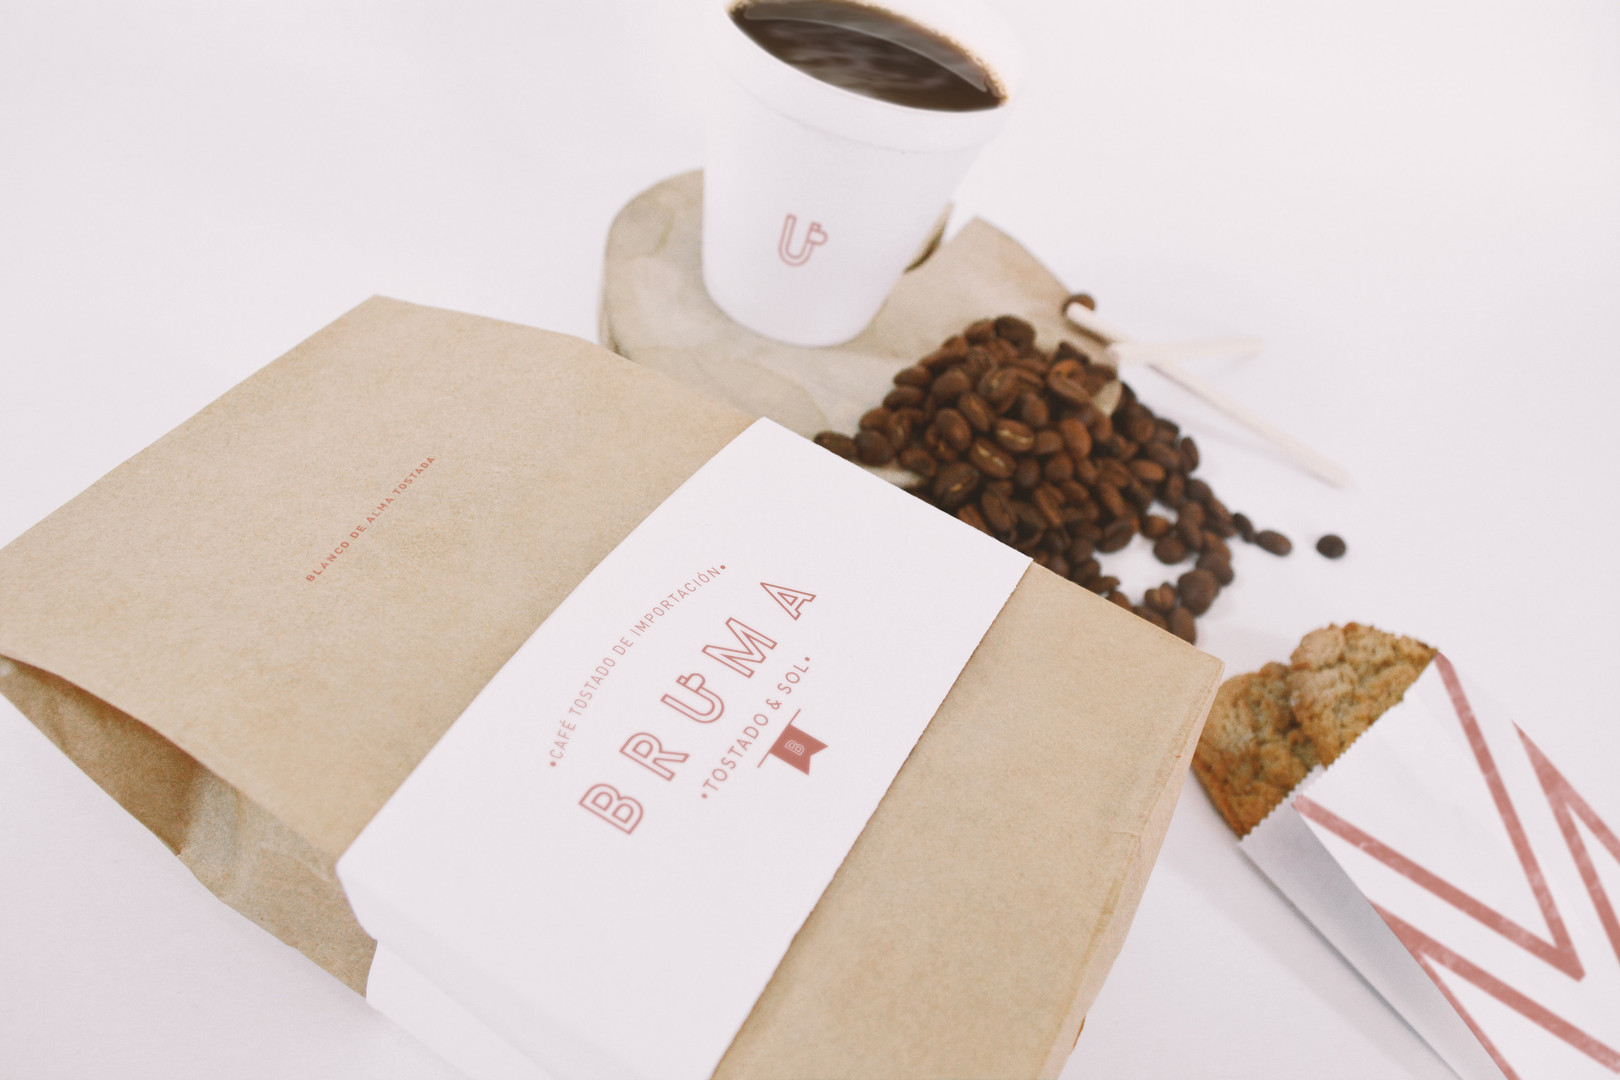 08 Coffee Bag and Cup Mockup Perspective